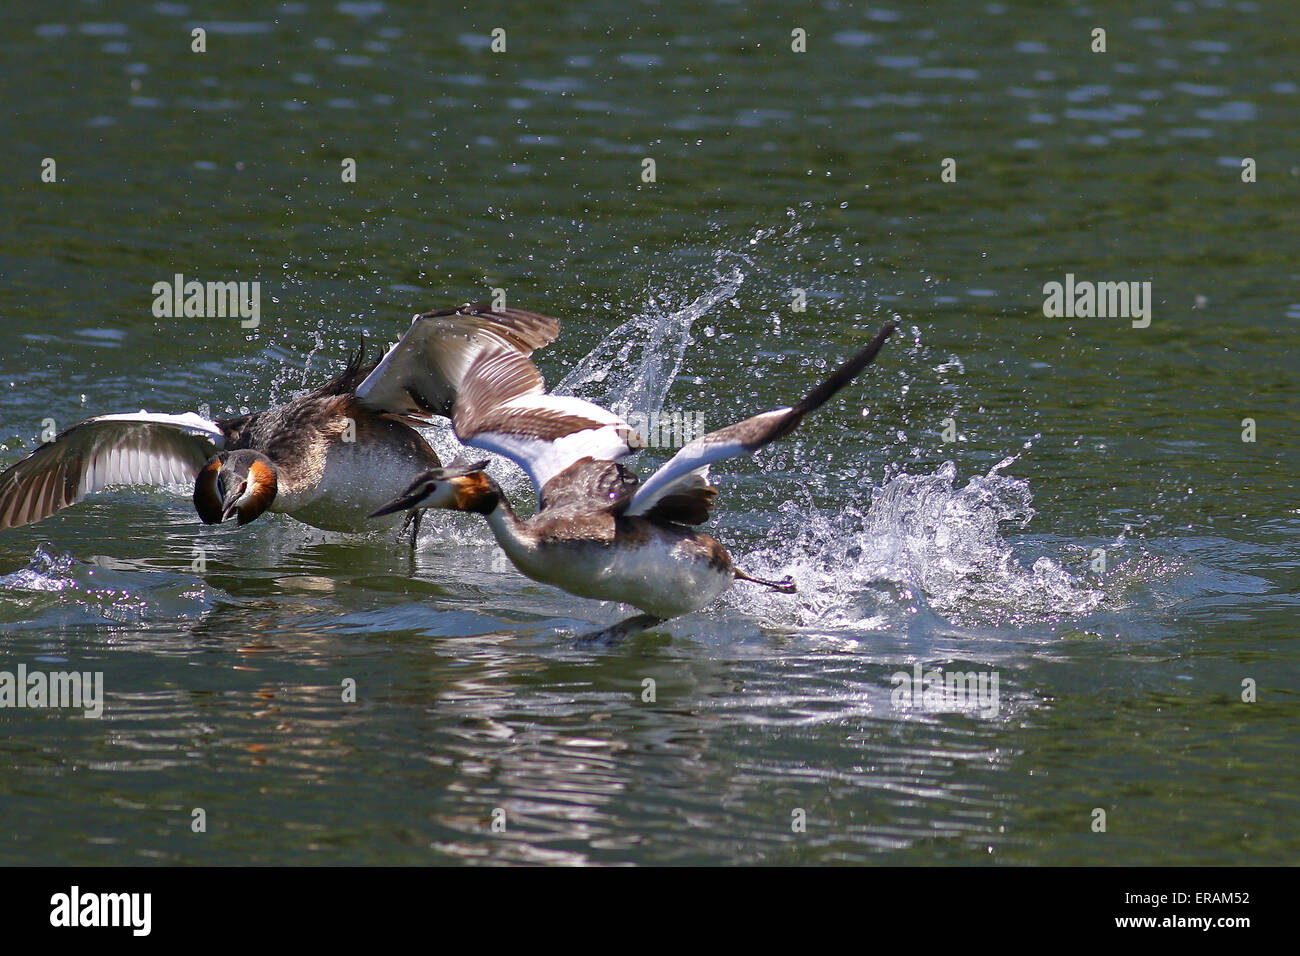 Great crested grebes displaying aggressive behavior - Stock Image